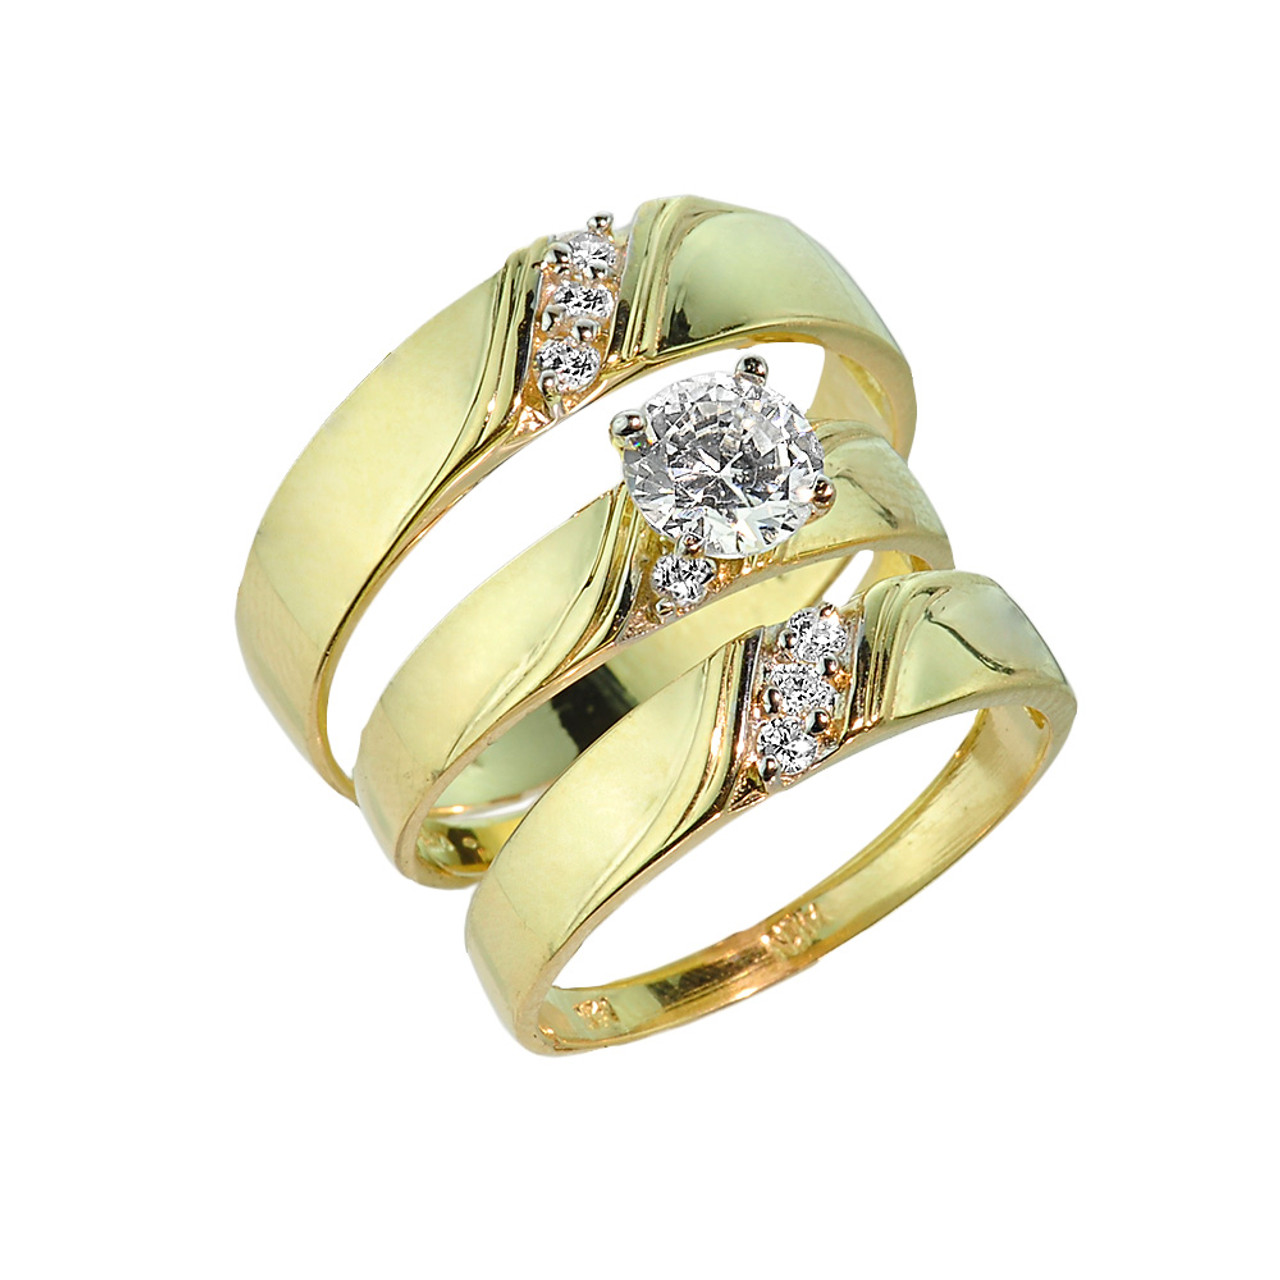 3 piece gold cz wedding ring set engagement ring With 3 piece wedding rings